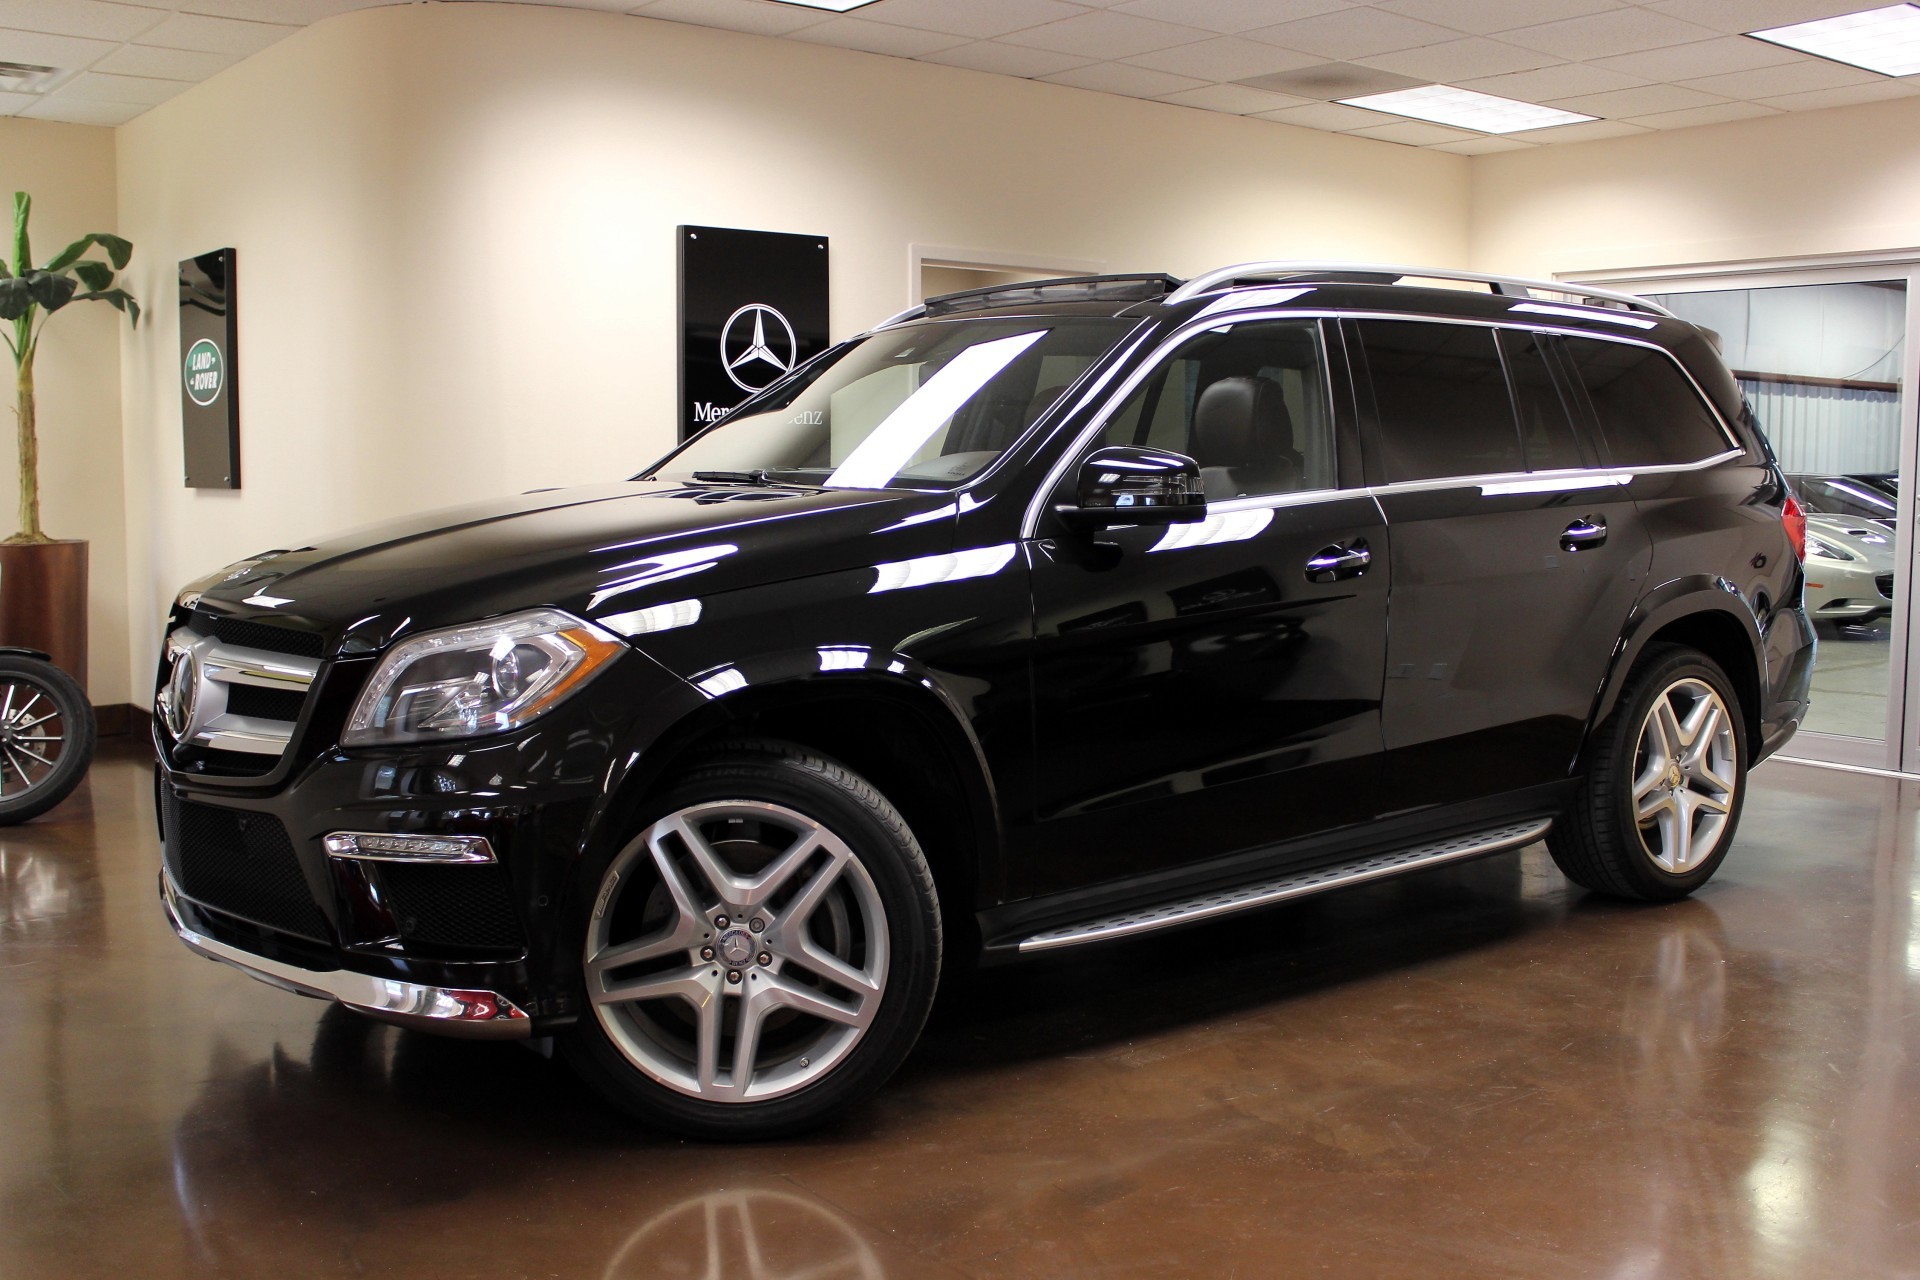 Used 2013 mercedes benz gl class stock p2944 ultra for 2013 mercedes benz gl class gl550 4matic